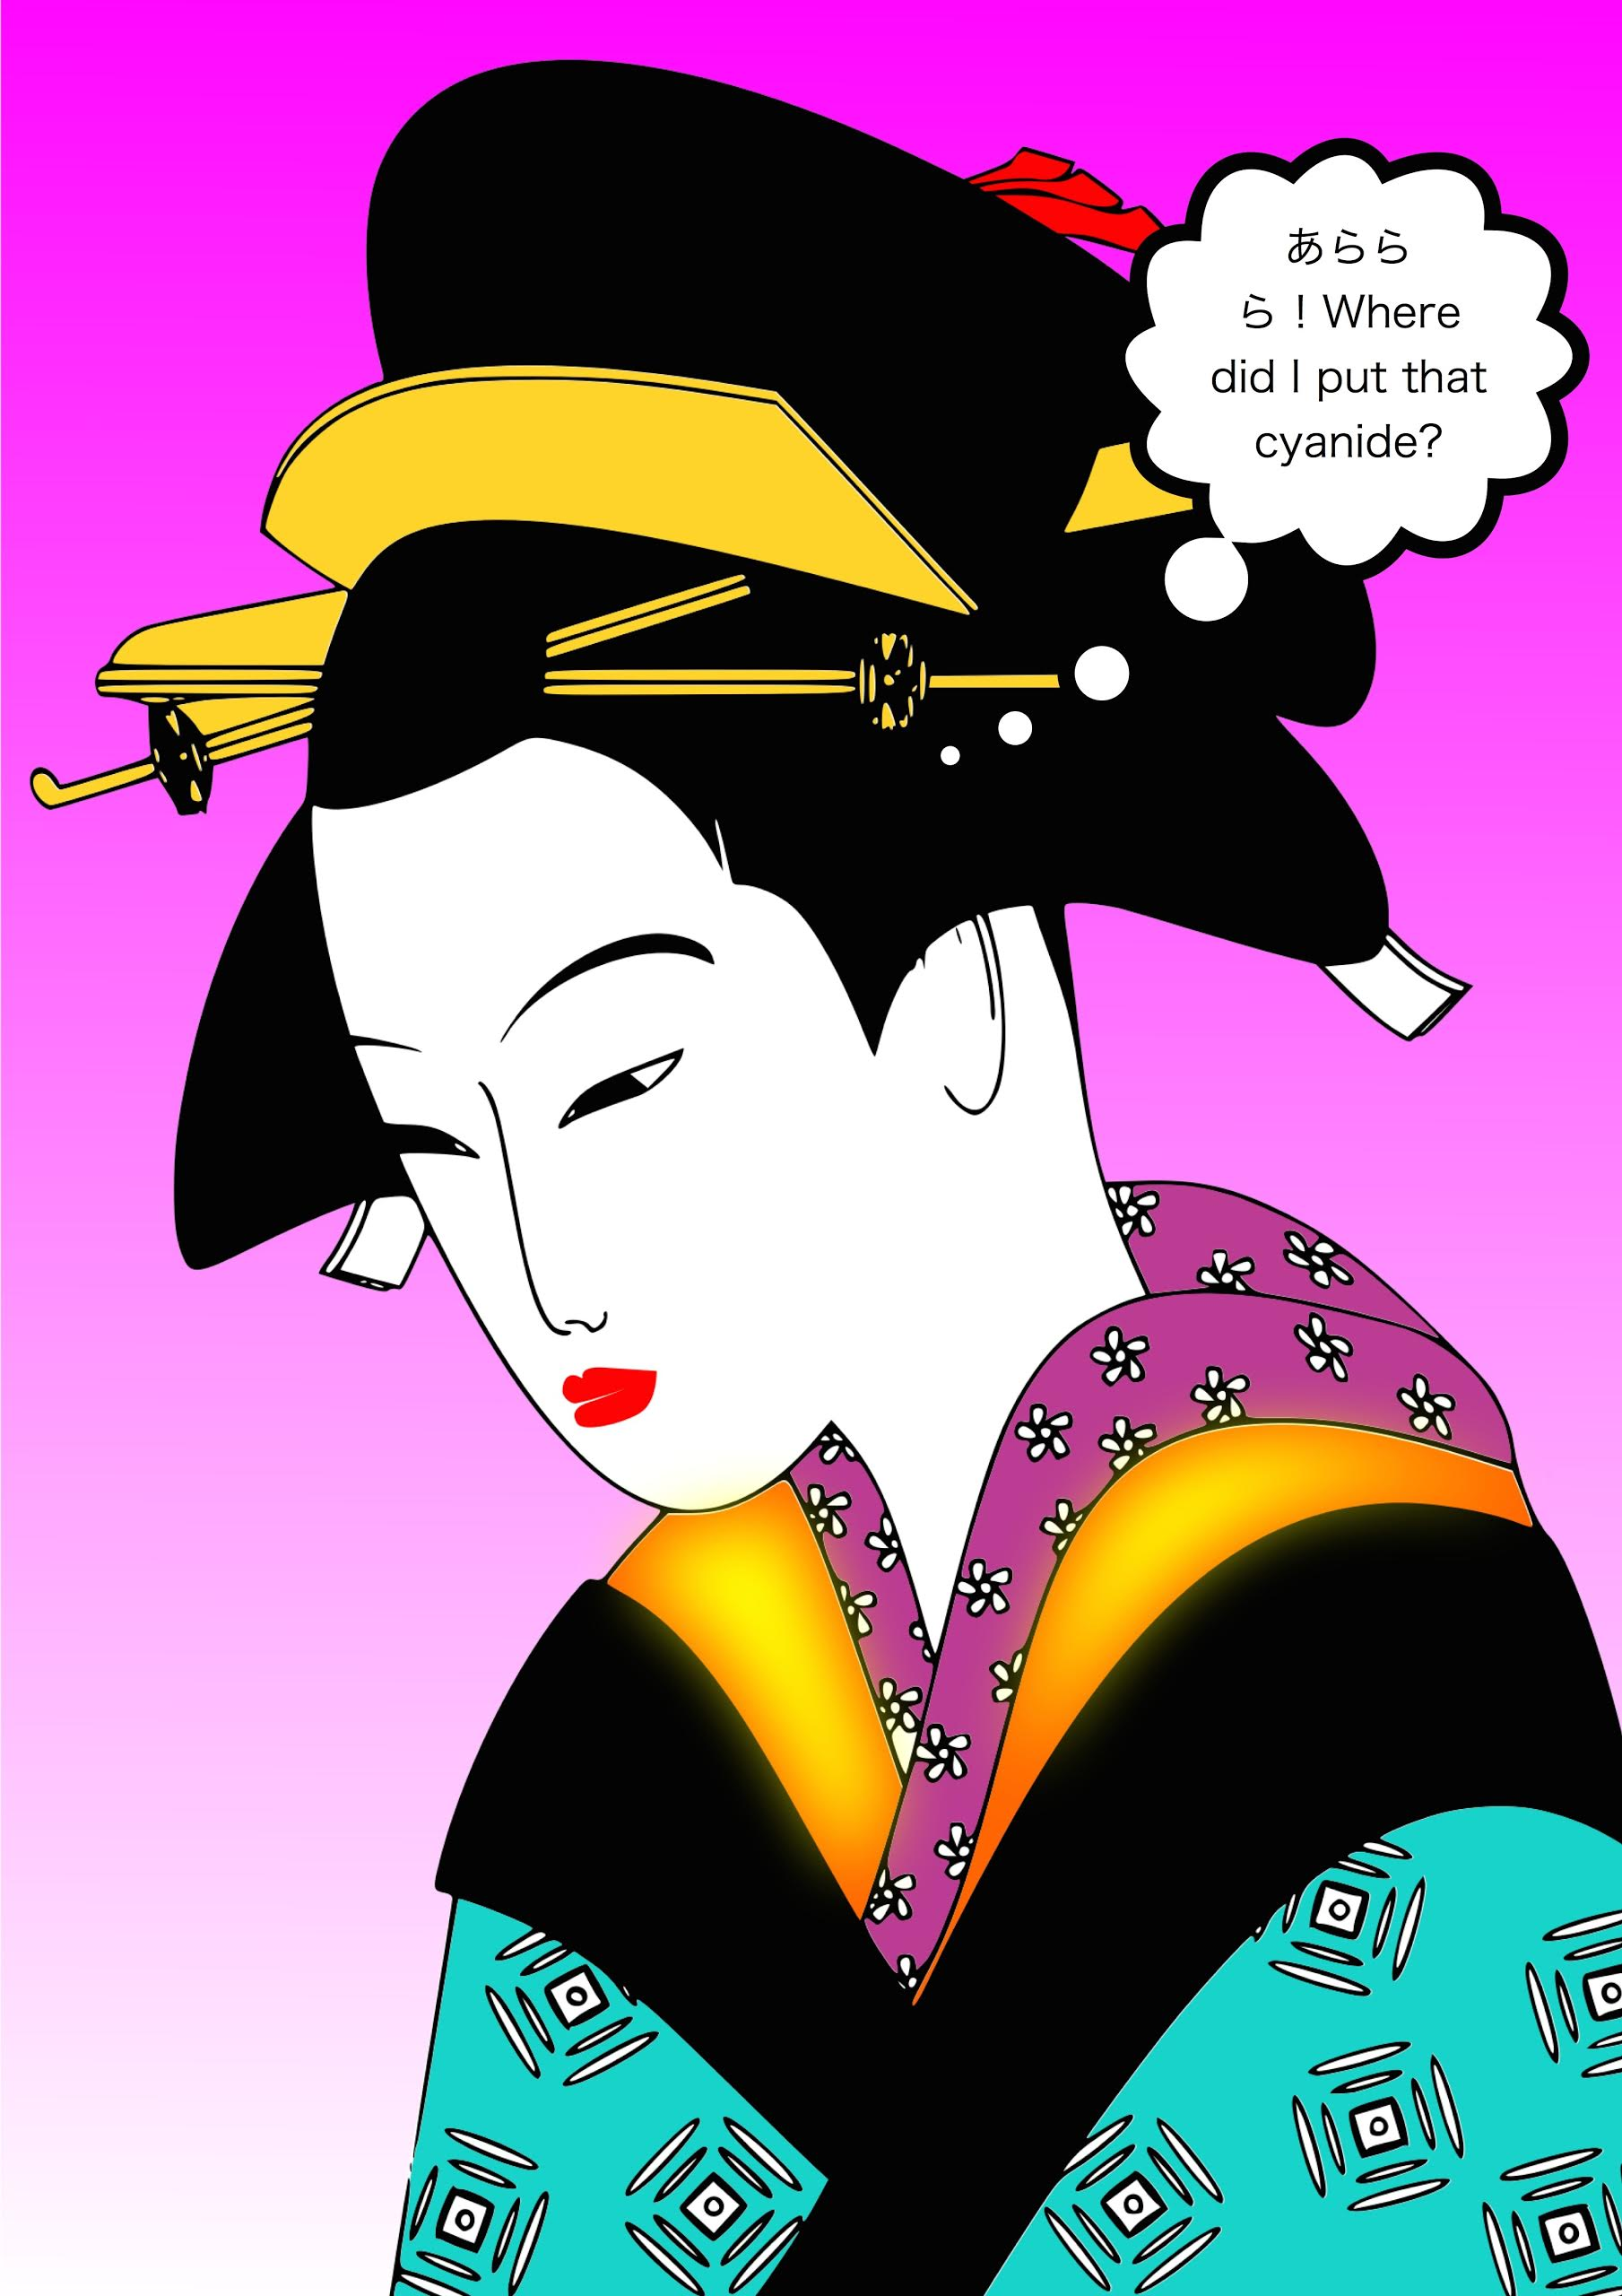 The Year of Dokufu: Poisonous Women in Japan